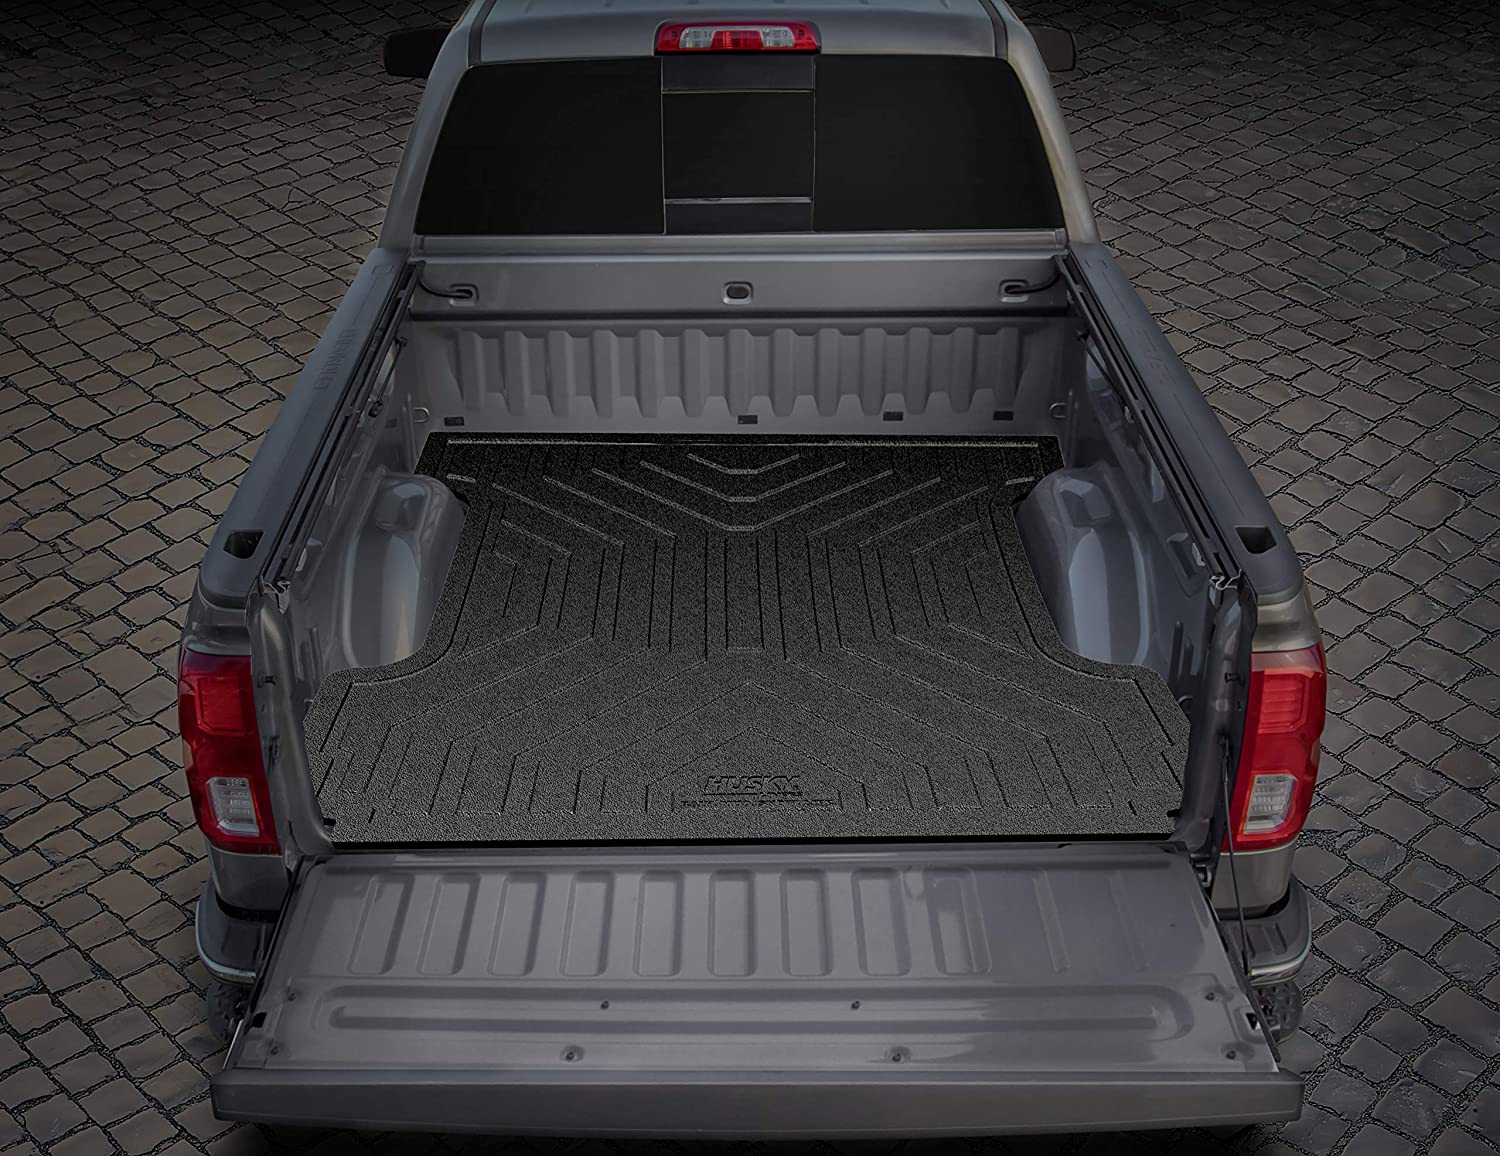 Husky Liner Heavy Duty Bed Mat helps in preserving the truck bed against heavy loads and cargo scrapings.